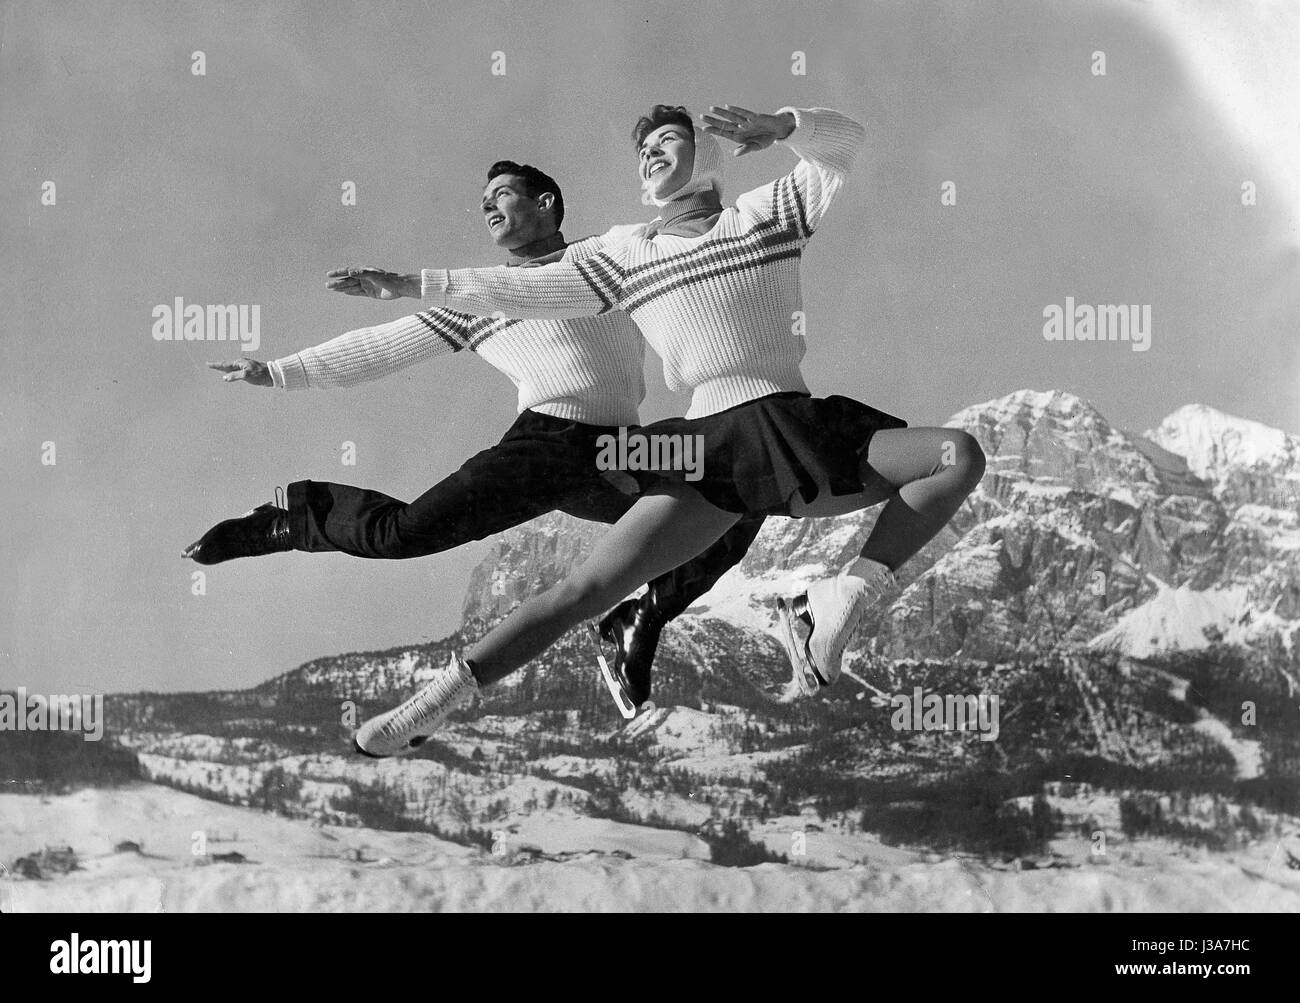 Ice skating at the Winter Olympics in Cortina, 1956 - Stock Image